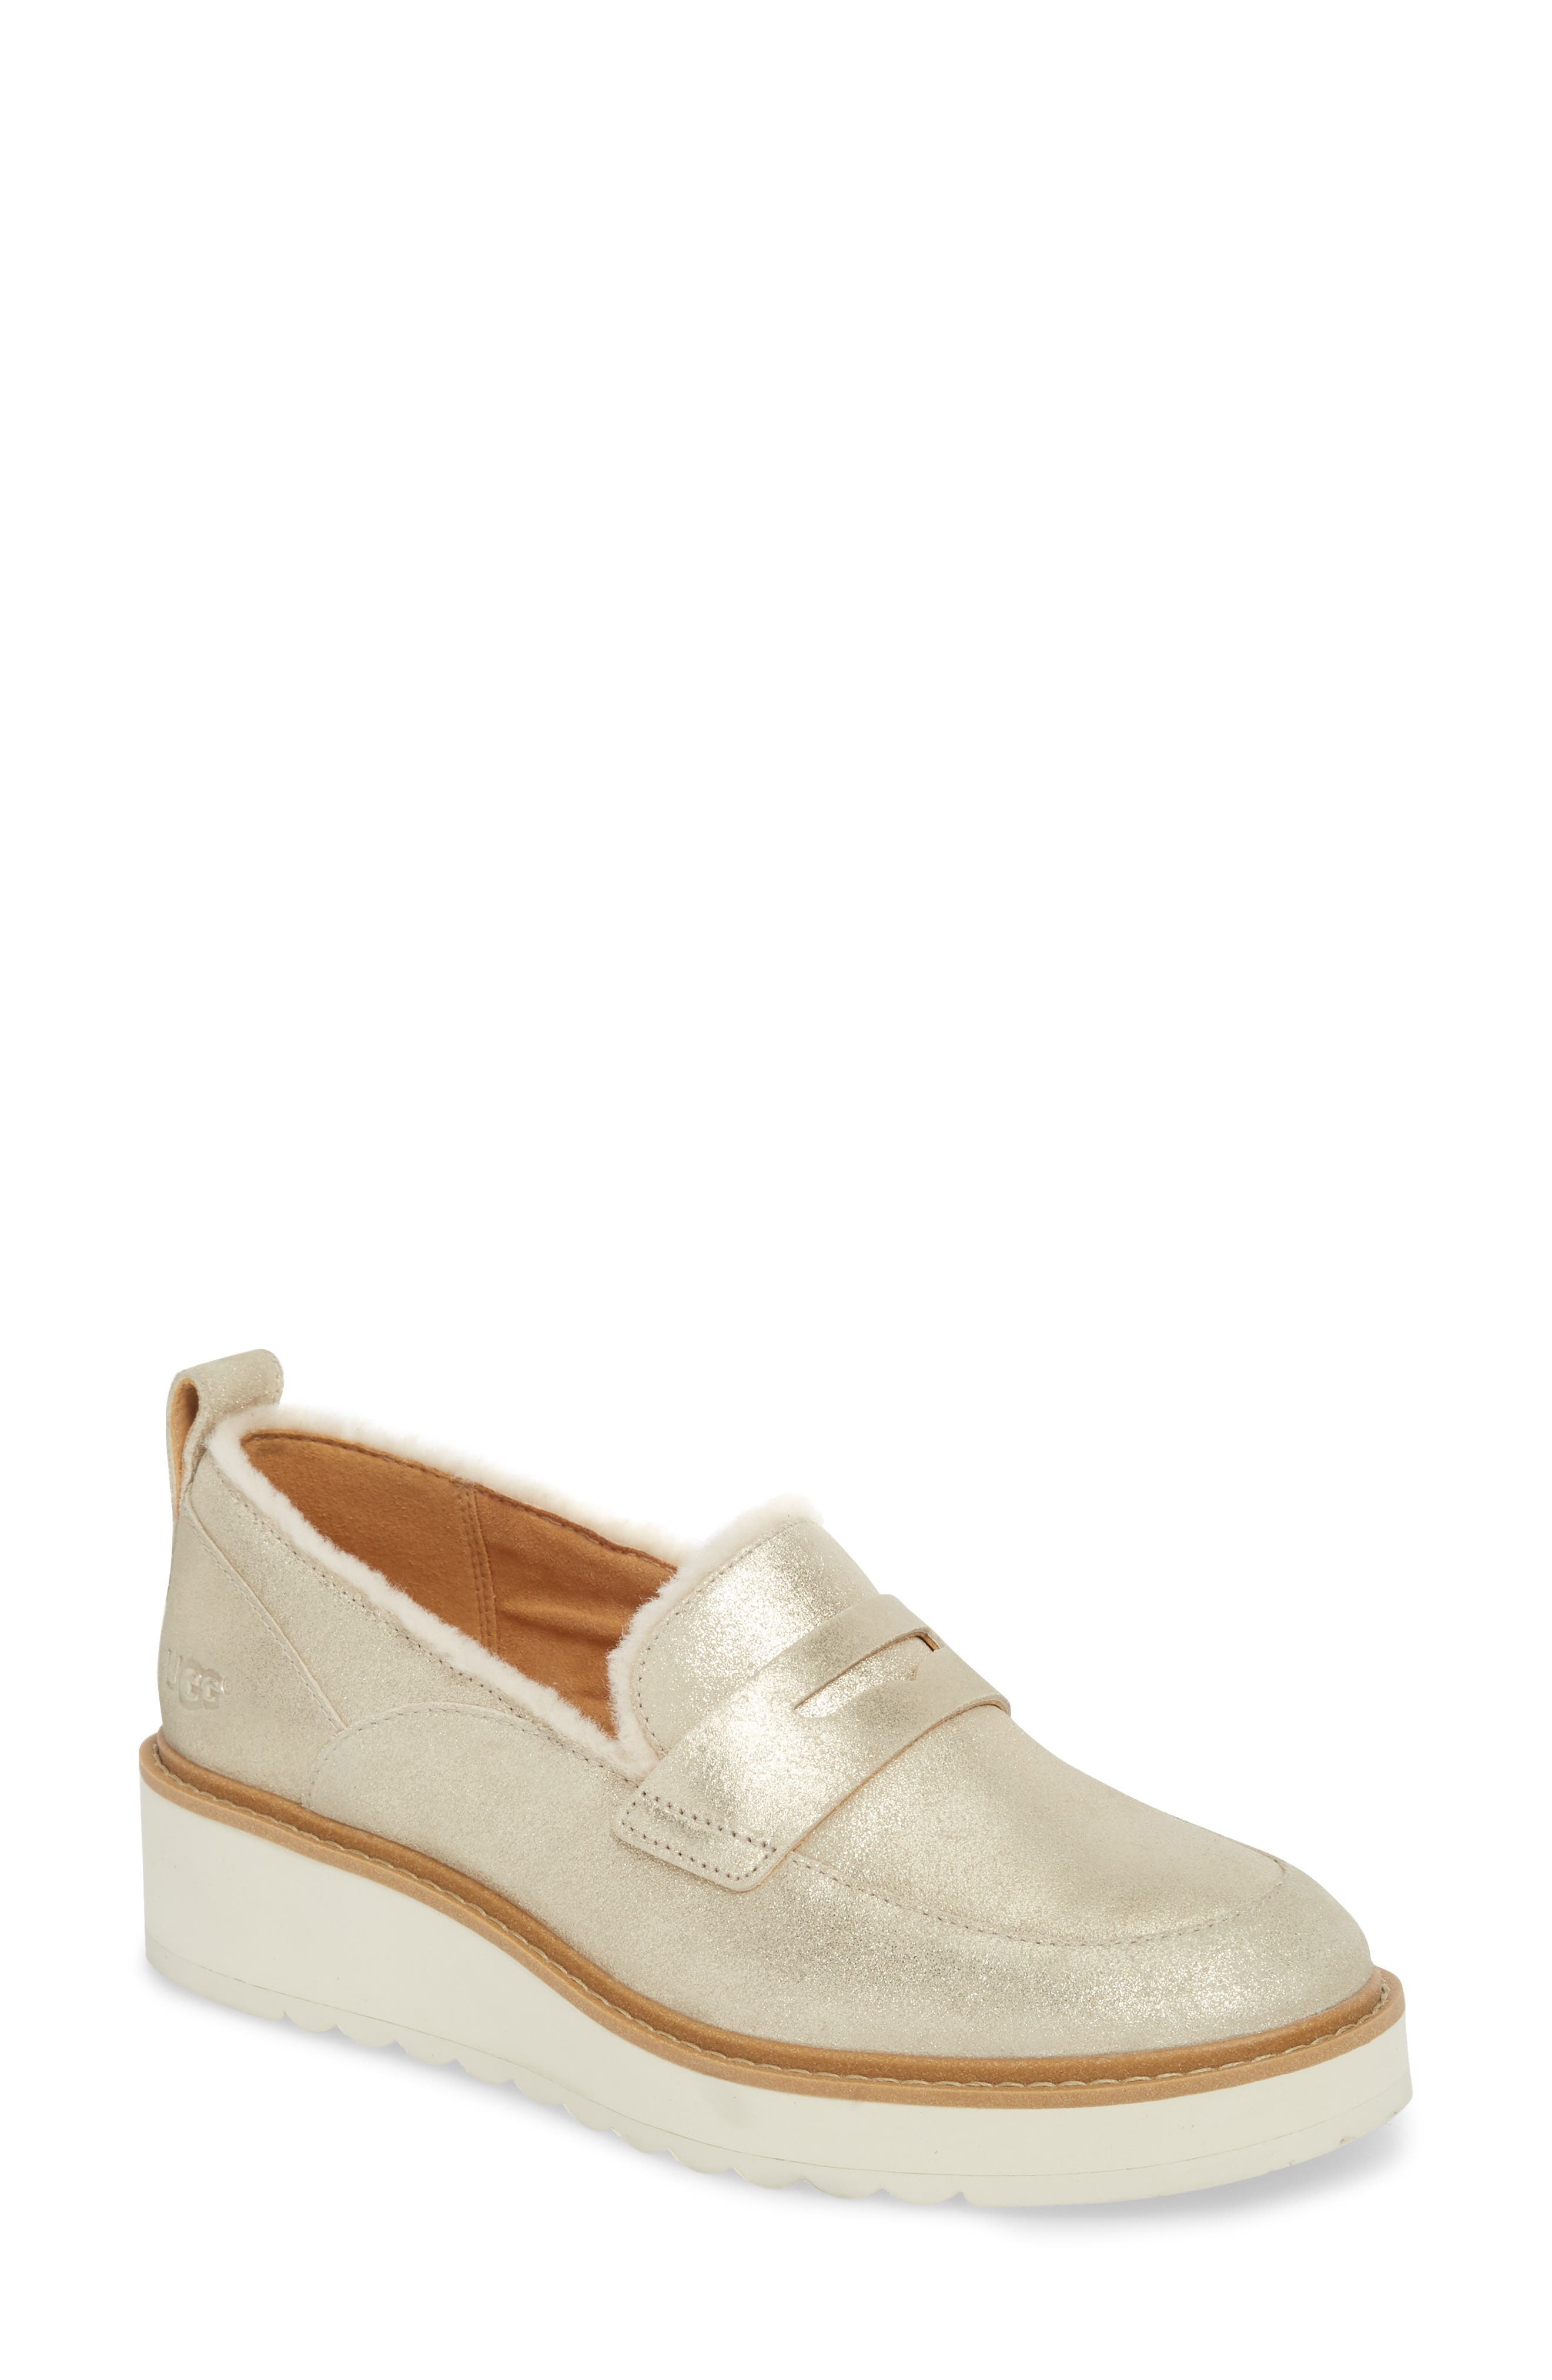 Atwater Metallic Wedge Loafer,                             Main thumbnail 1, color,                             710